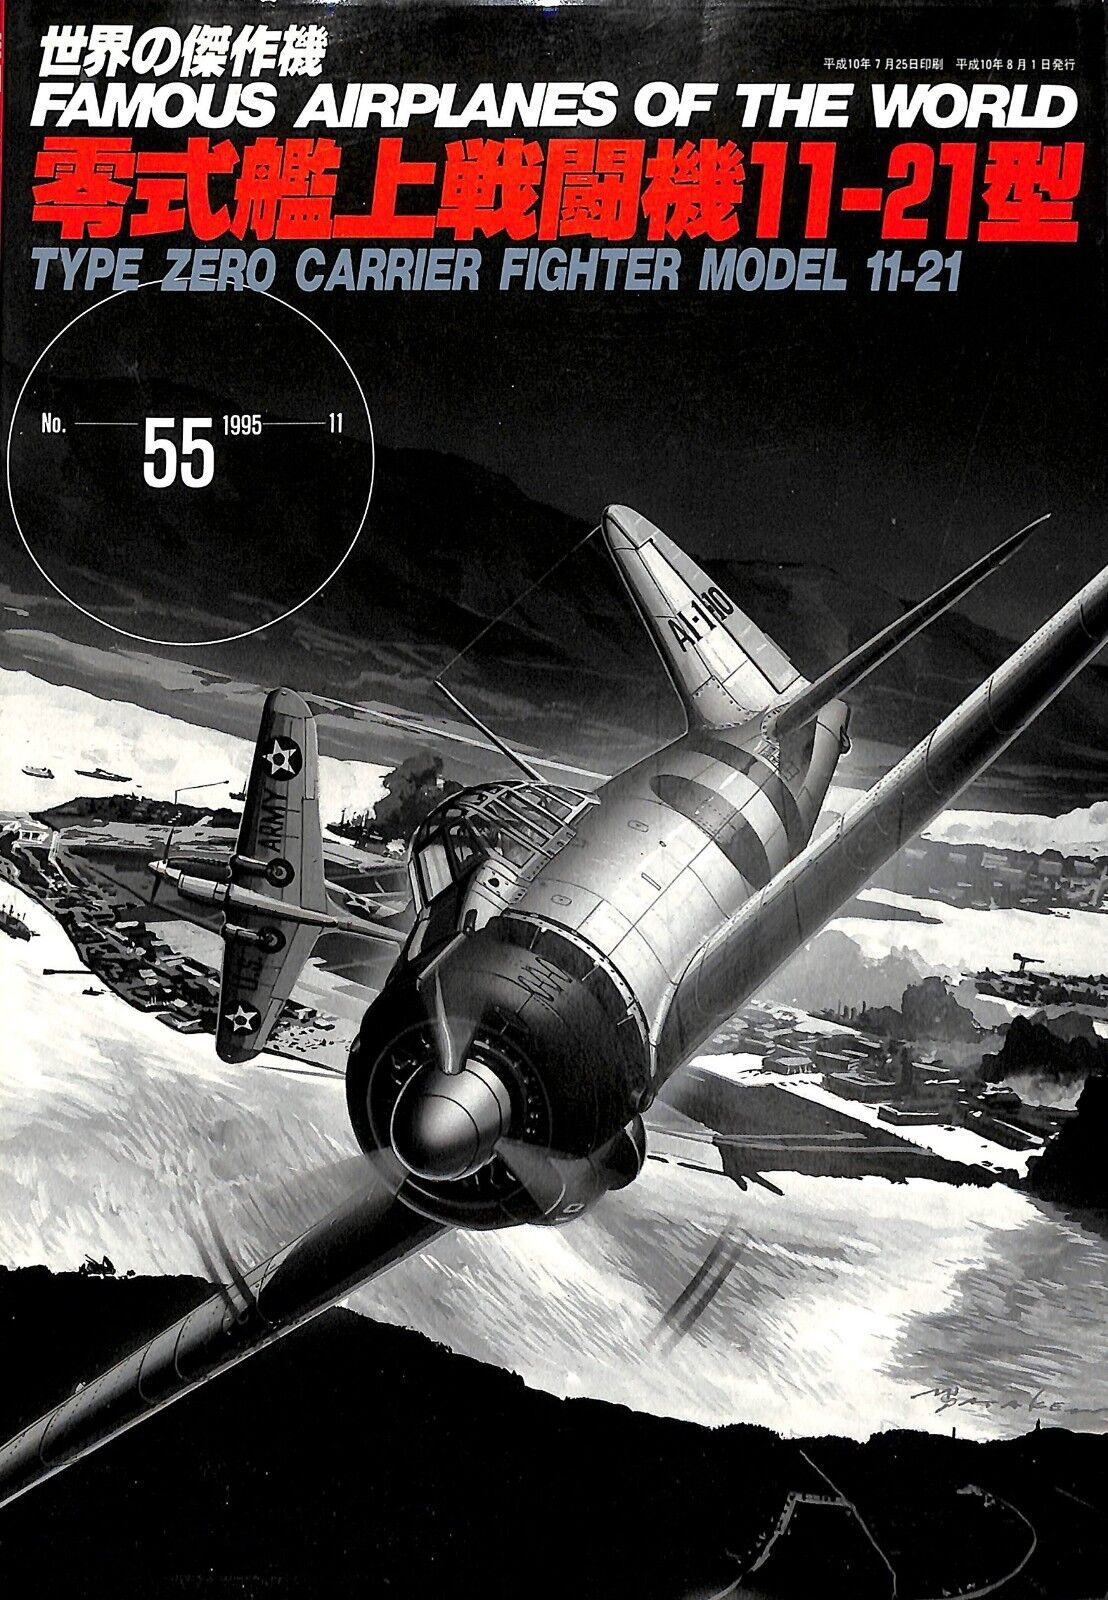 Famous Airplanes of The World No.55 Type Zero Carrier 11-21 Military Book